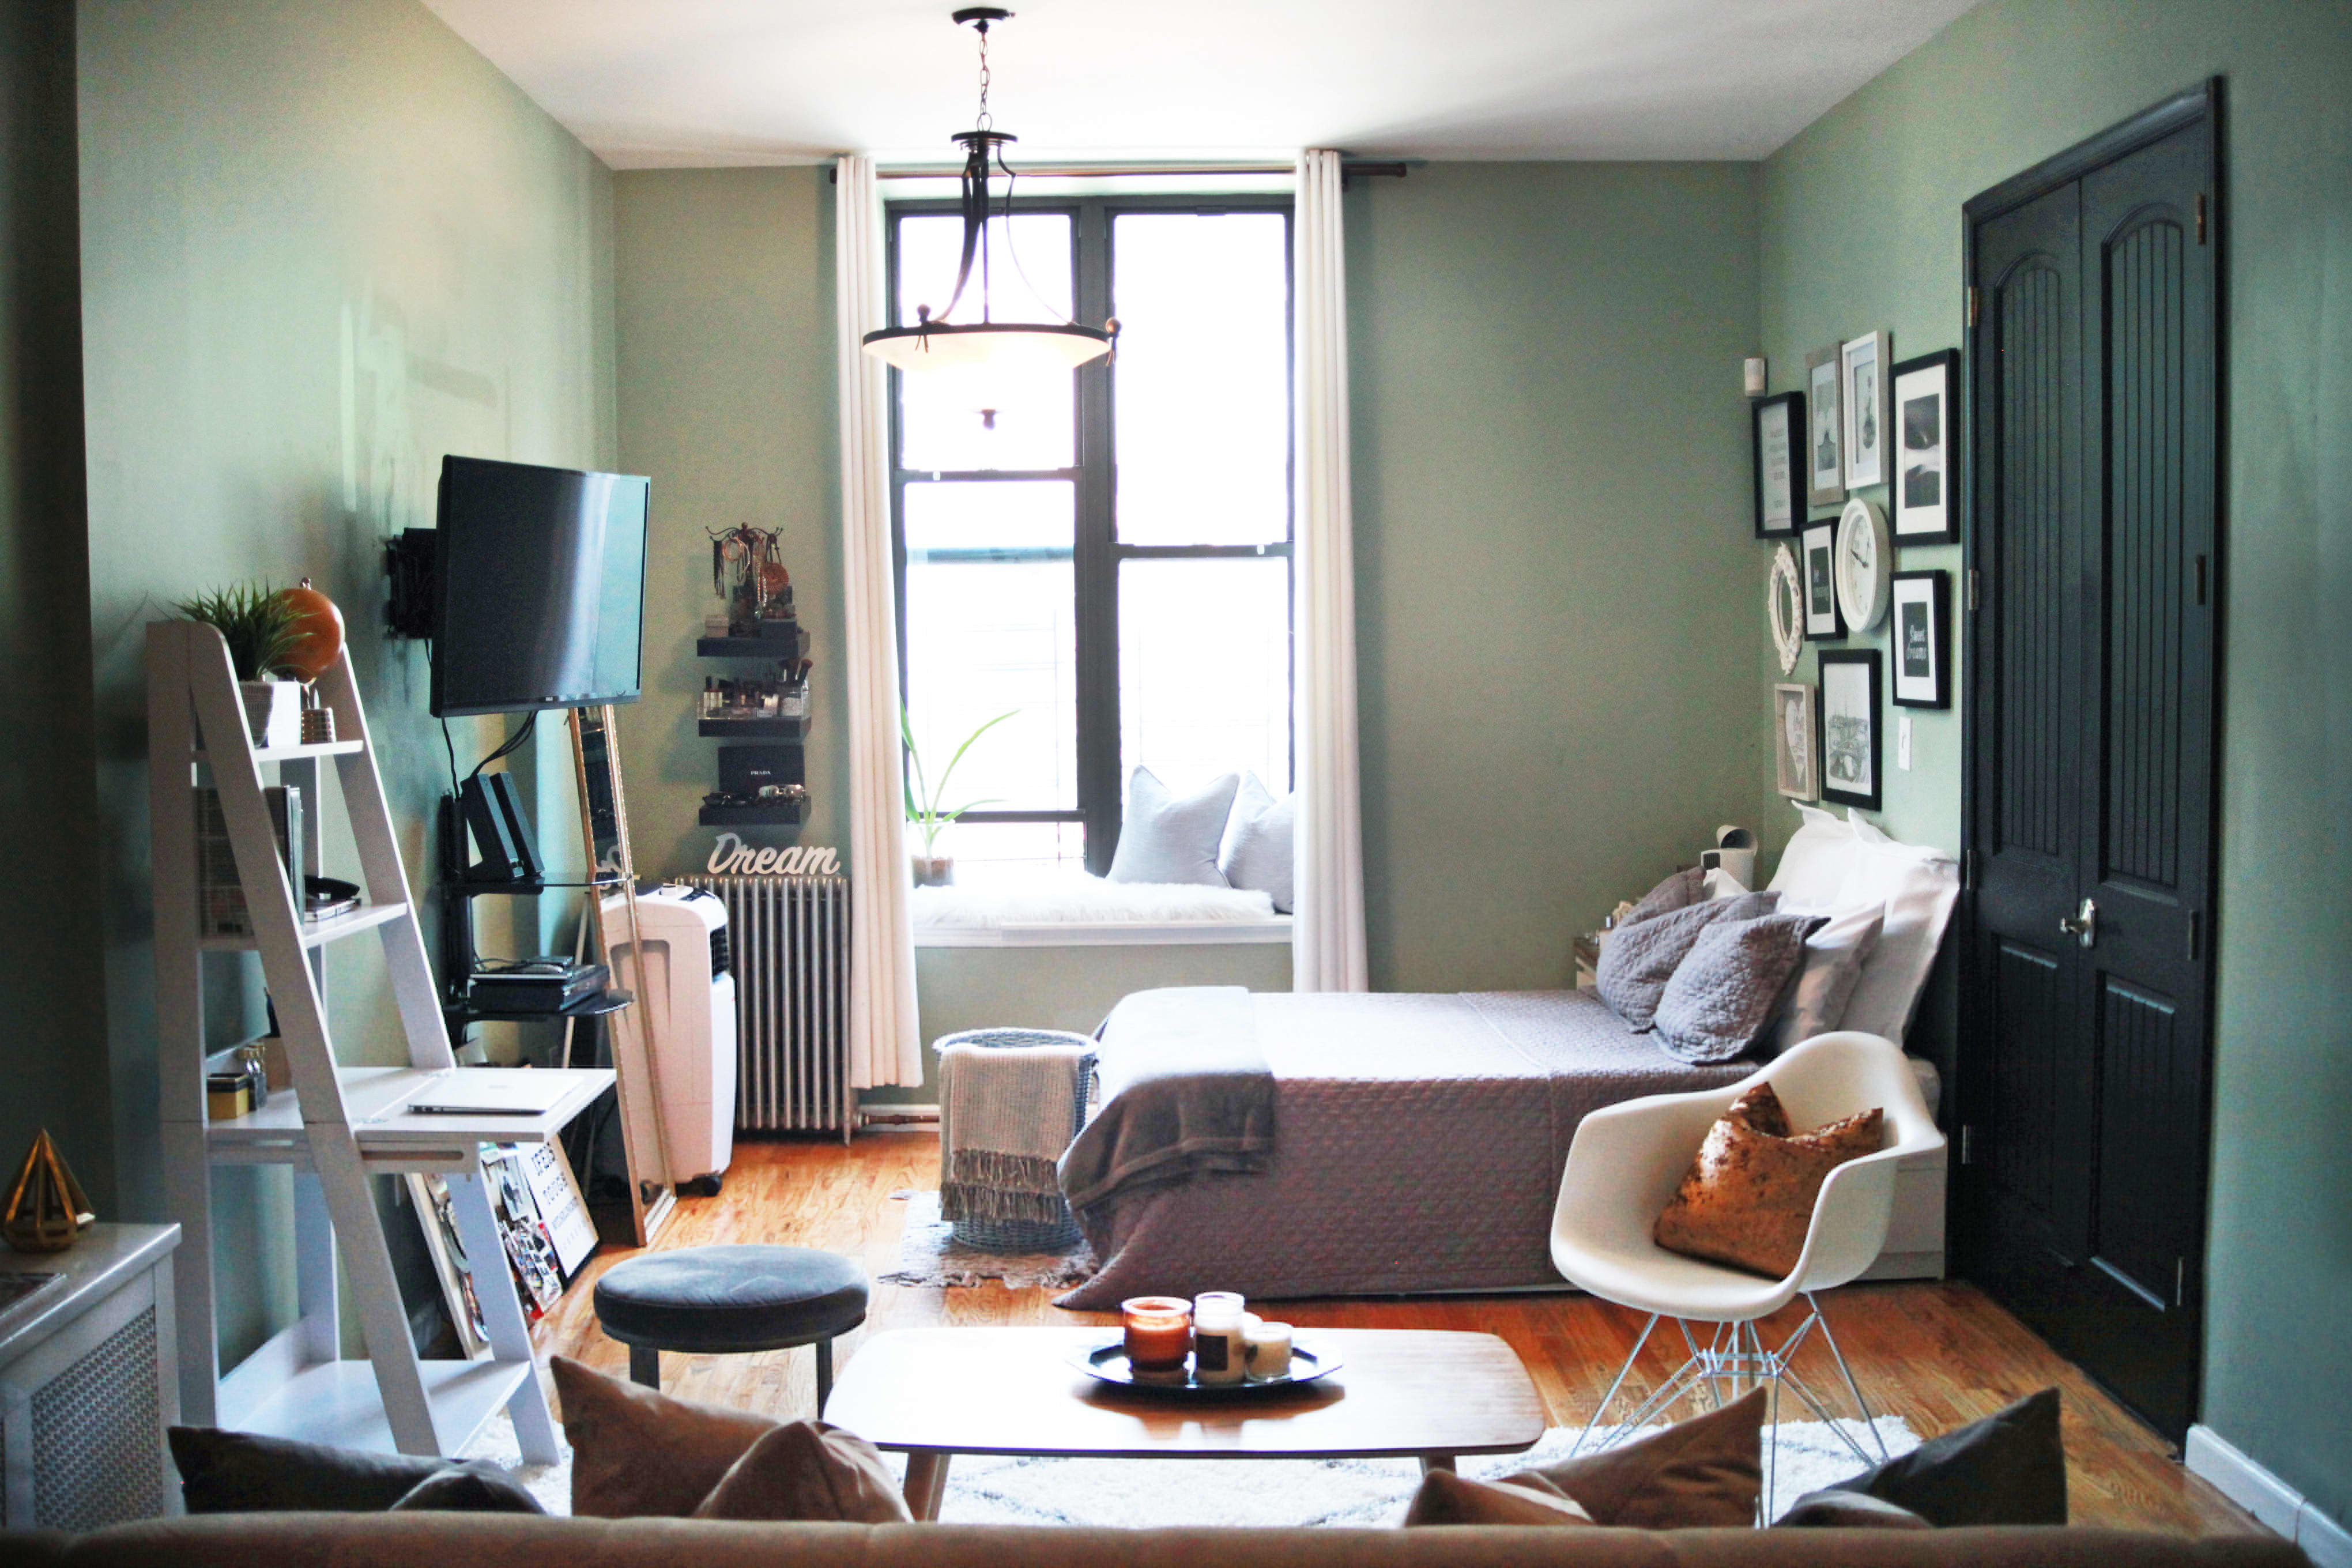 Small Space Living Ideas In A Tiny Brooklyn Studio Apartment Therapy